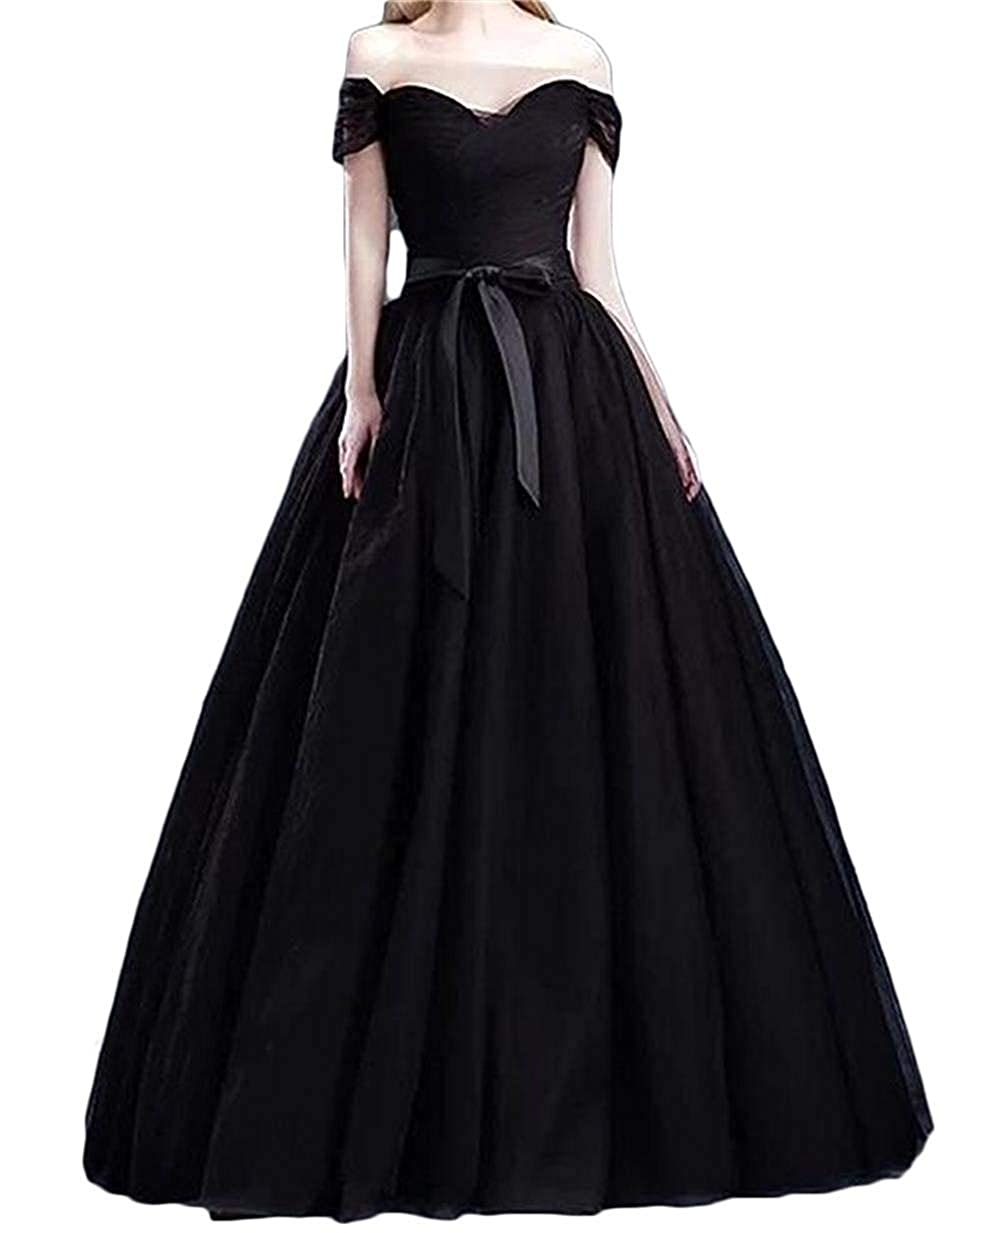 Black XKYU Women's Off The Shoulder Prom Evening Party Dresses Tulle Long Formal Ball Gowns